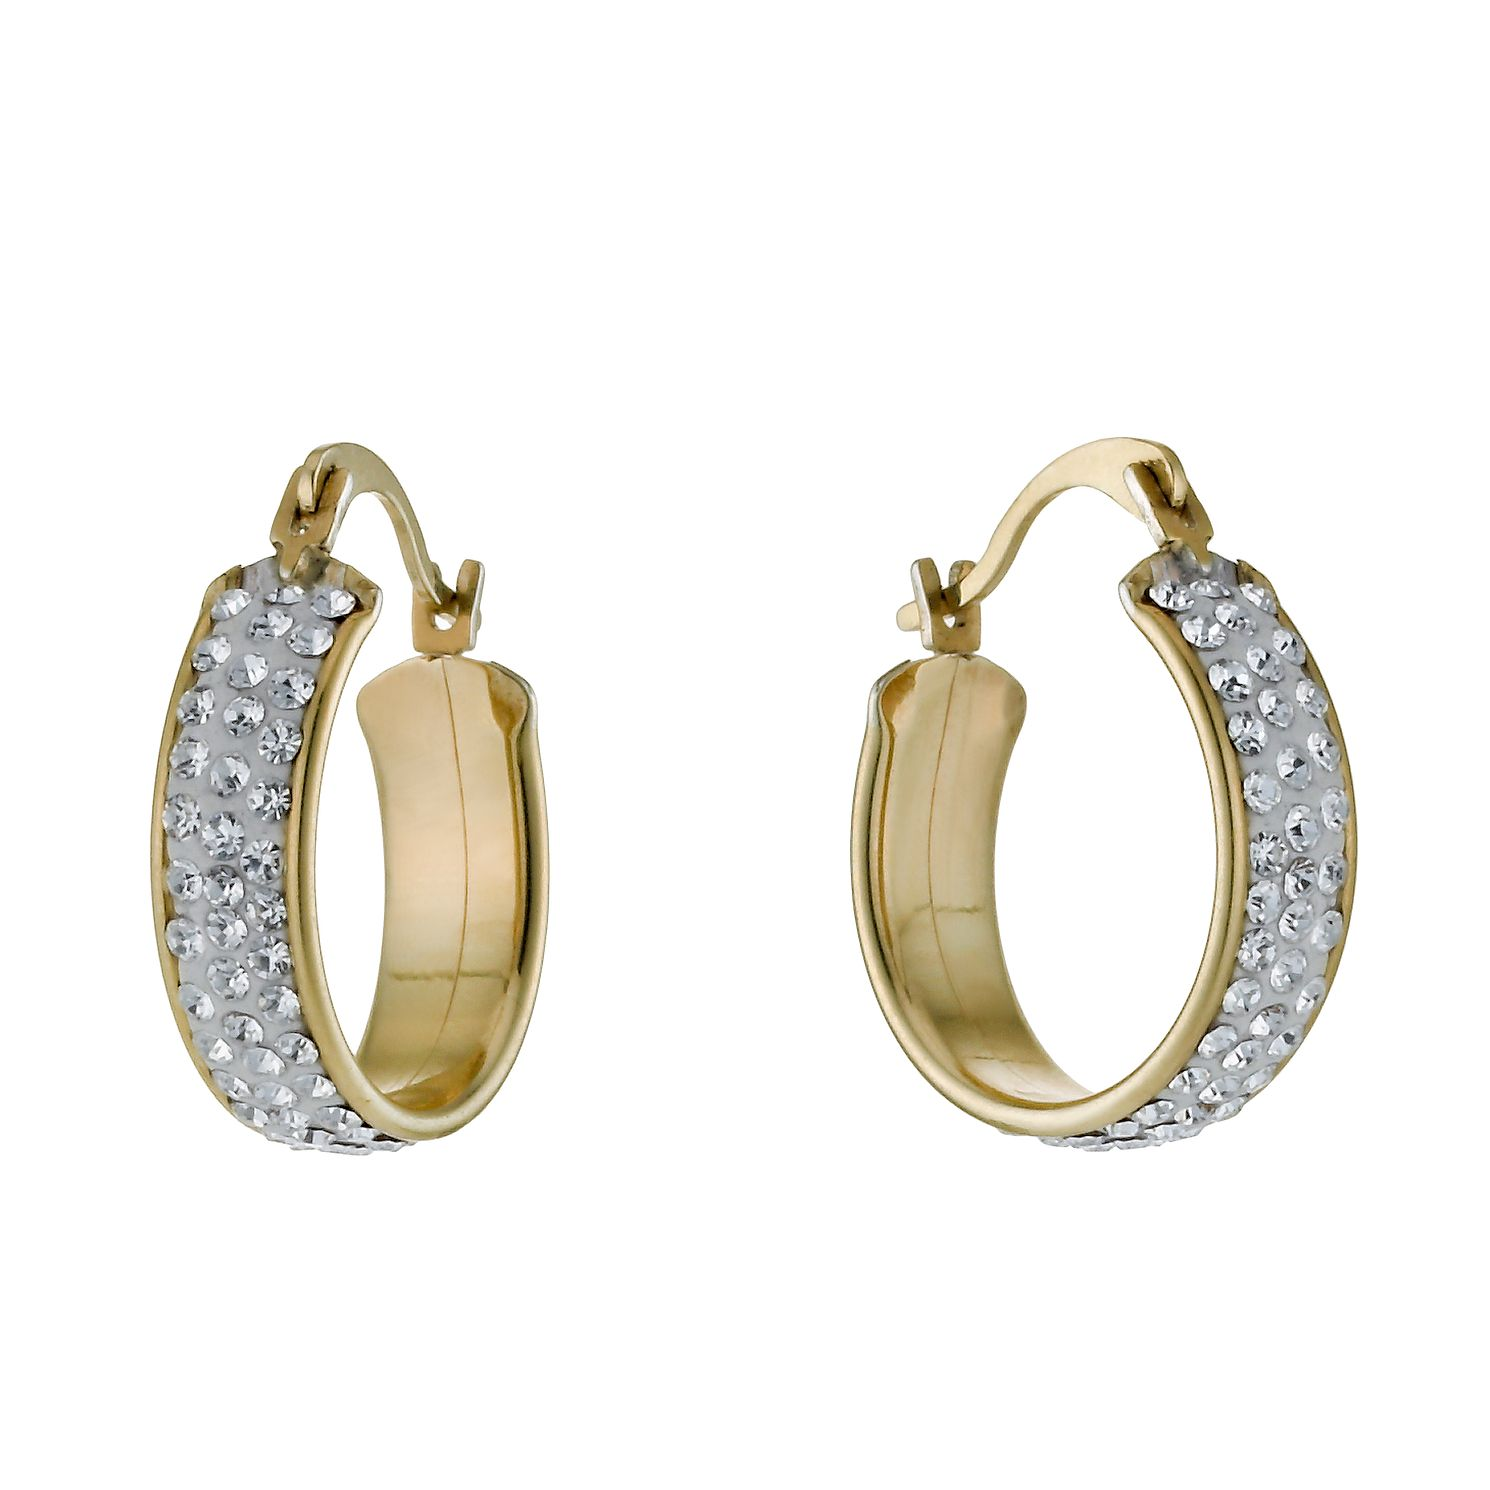 Together Silver & 9ct Bonded Gold Crystal 15mm Hoop Earrings - Product number 9760318